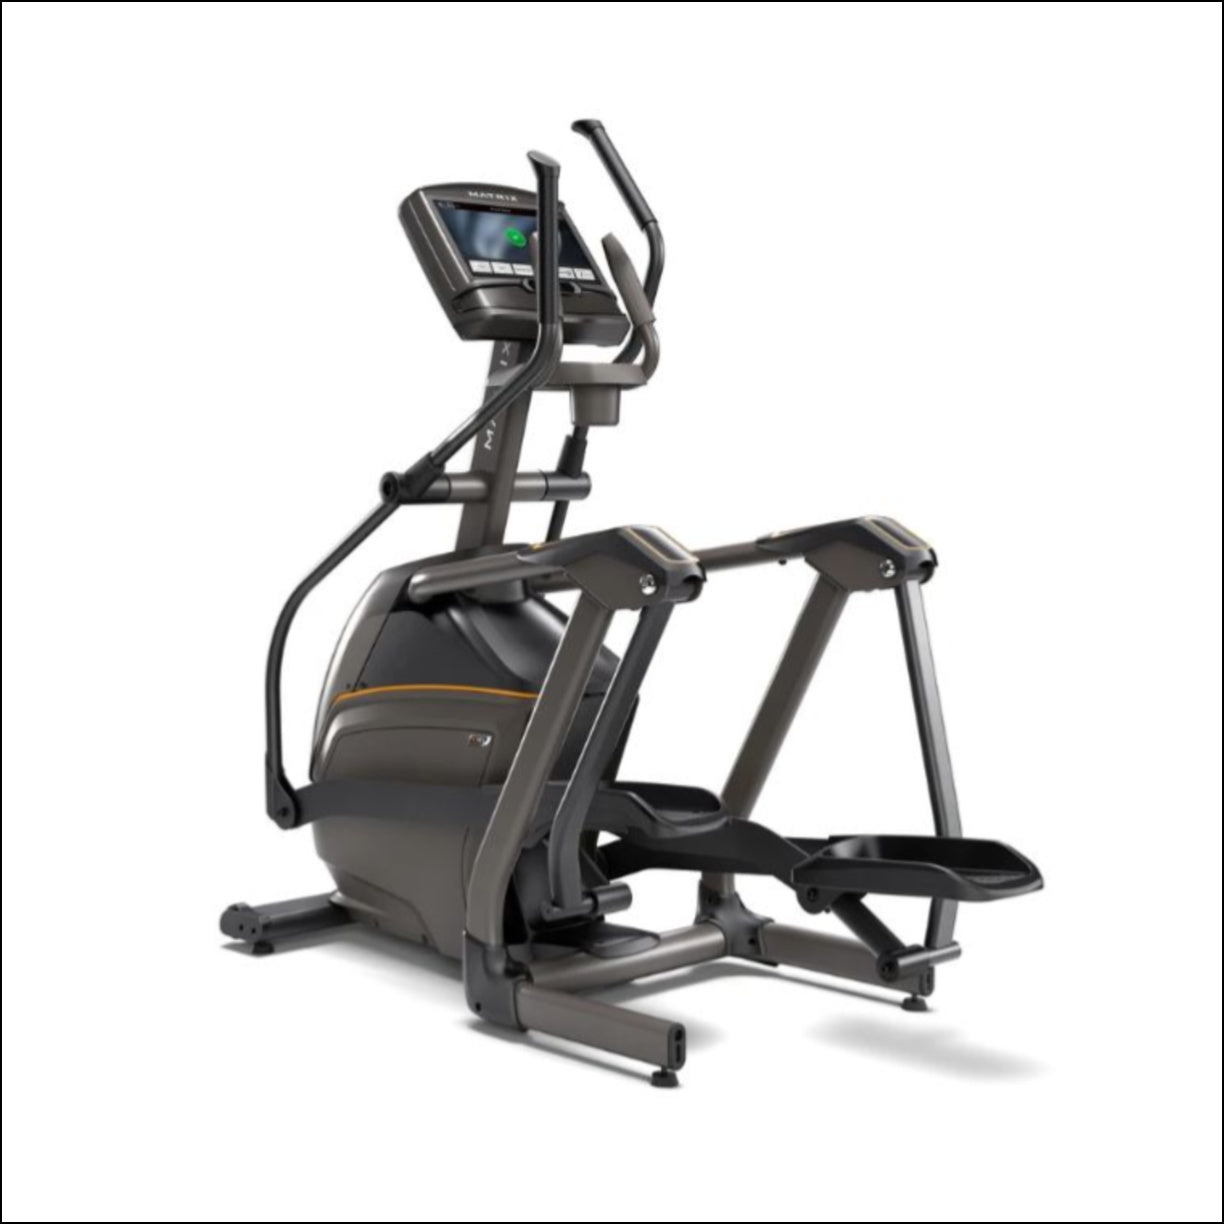 MATRIX E30 XIR Elliptical A harmony of design and natural movement. Offer your customers the most compact, most comfortable, smoothest-moving elliptical in the industry.